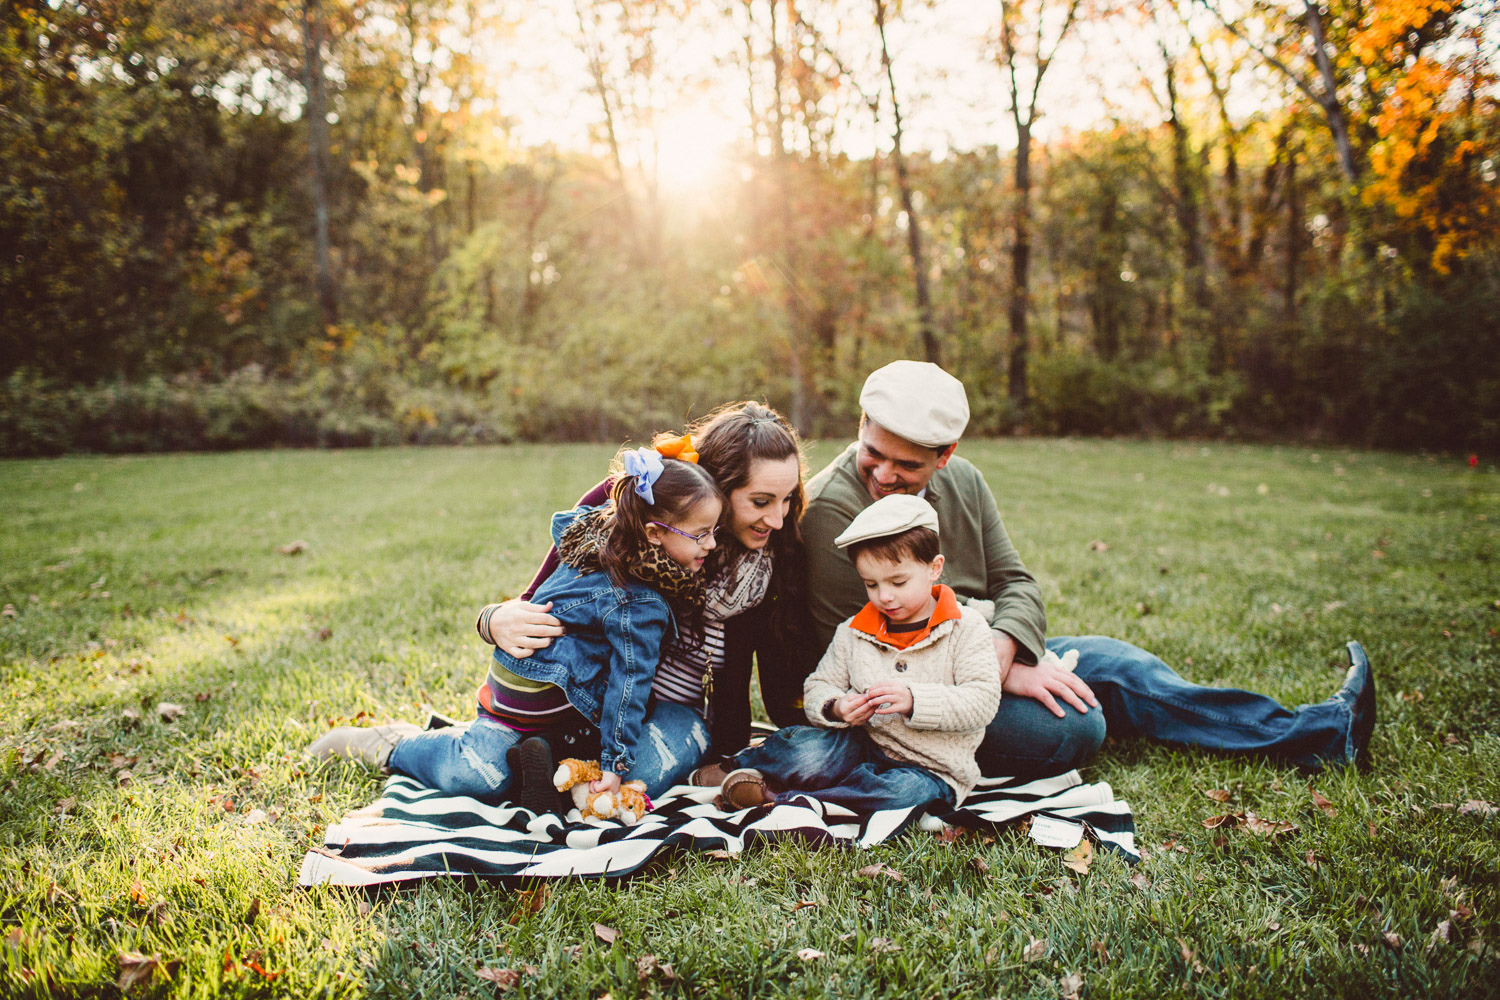 Family cuddled together on blanket with backlight